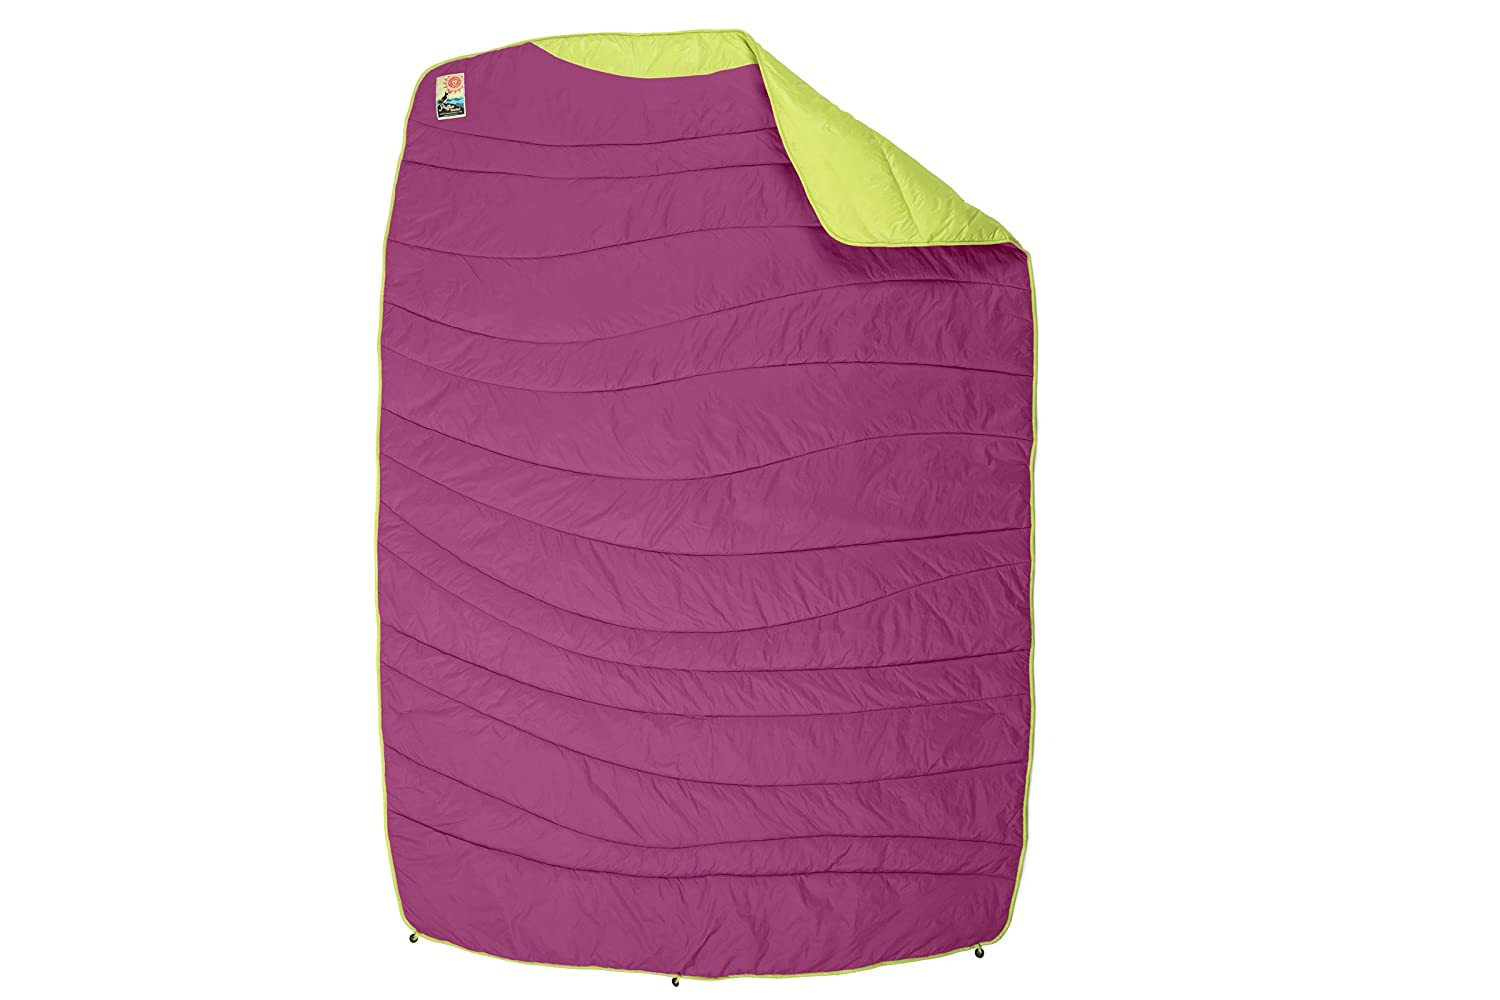 NEMO Equipment Inc Puffin Blanket Lady Slipper//Ivy One Size